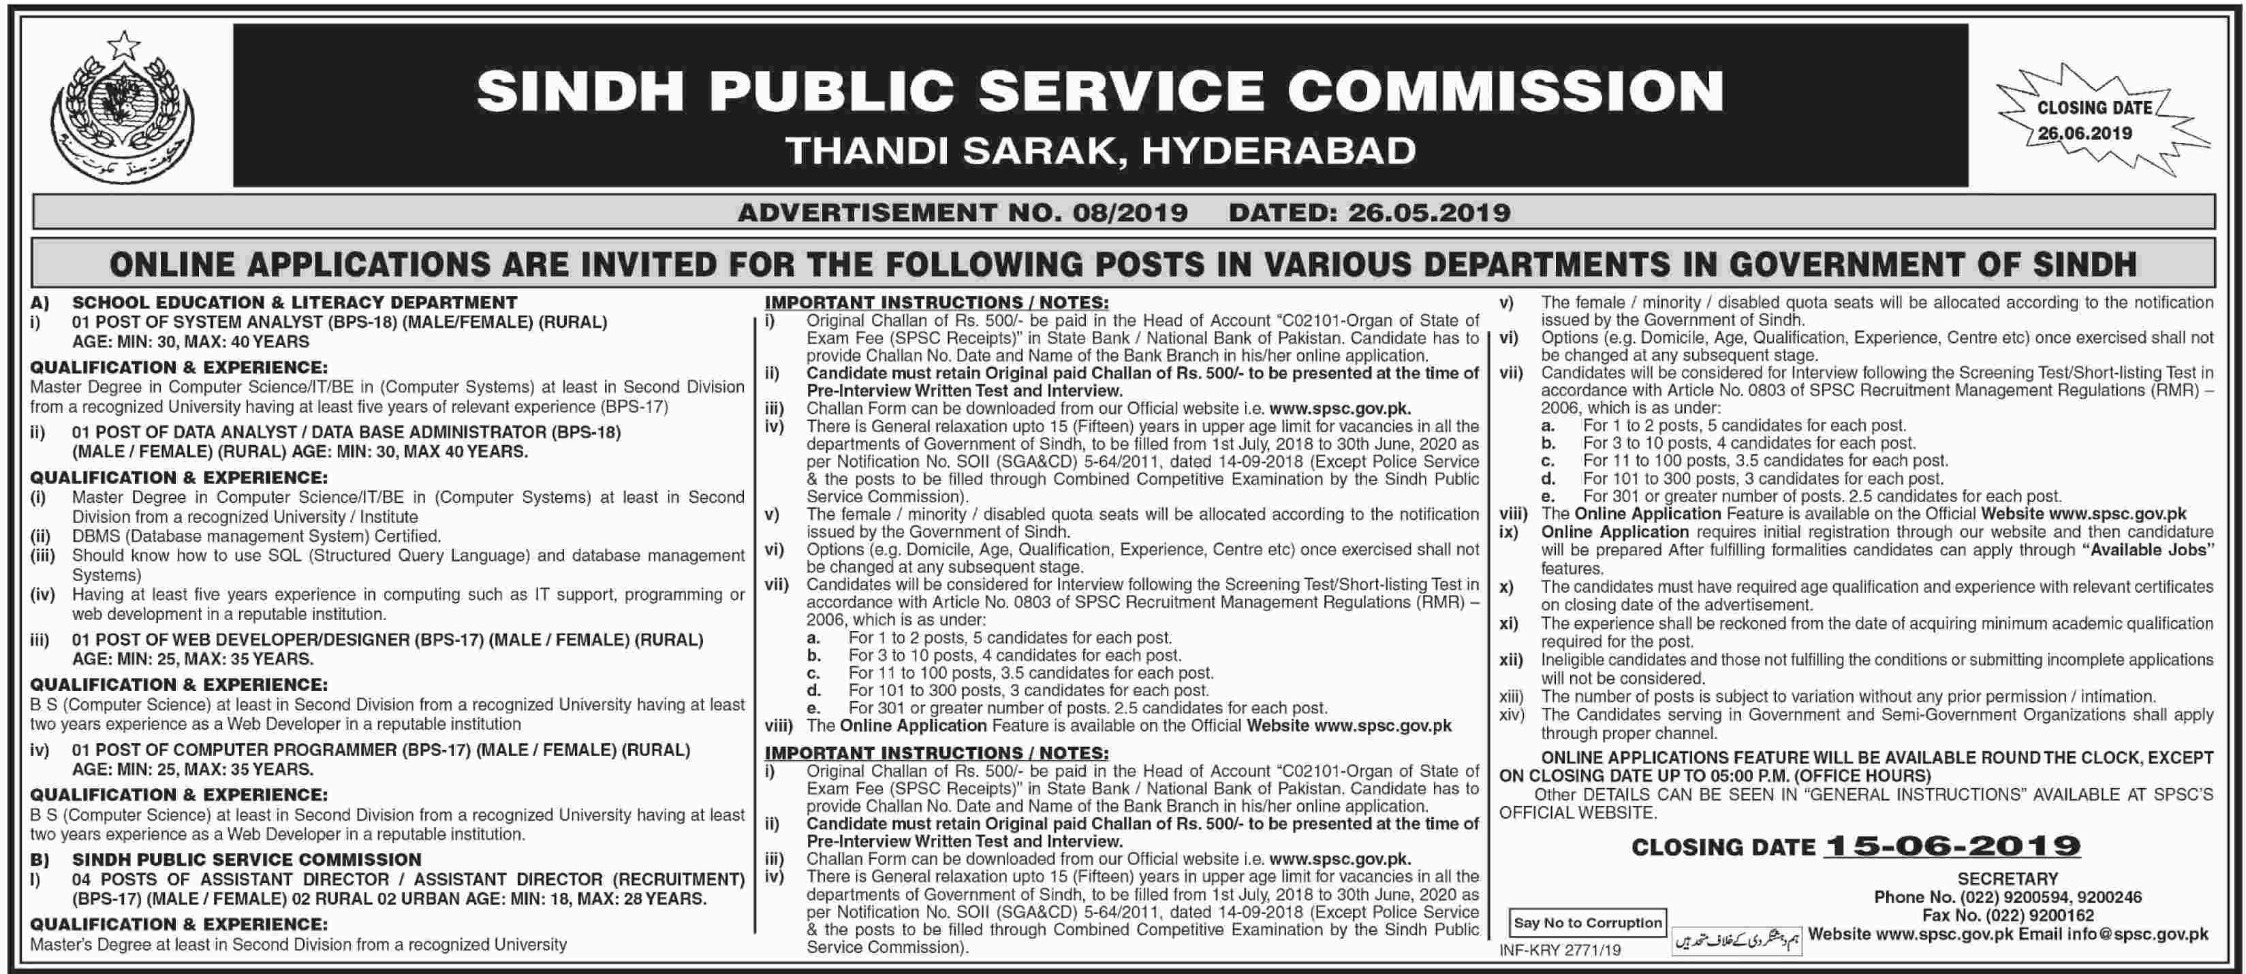 Sindh Public Service Commission SPSC Jobs 2019